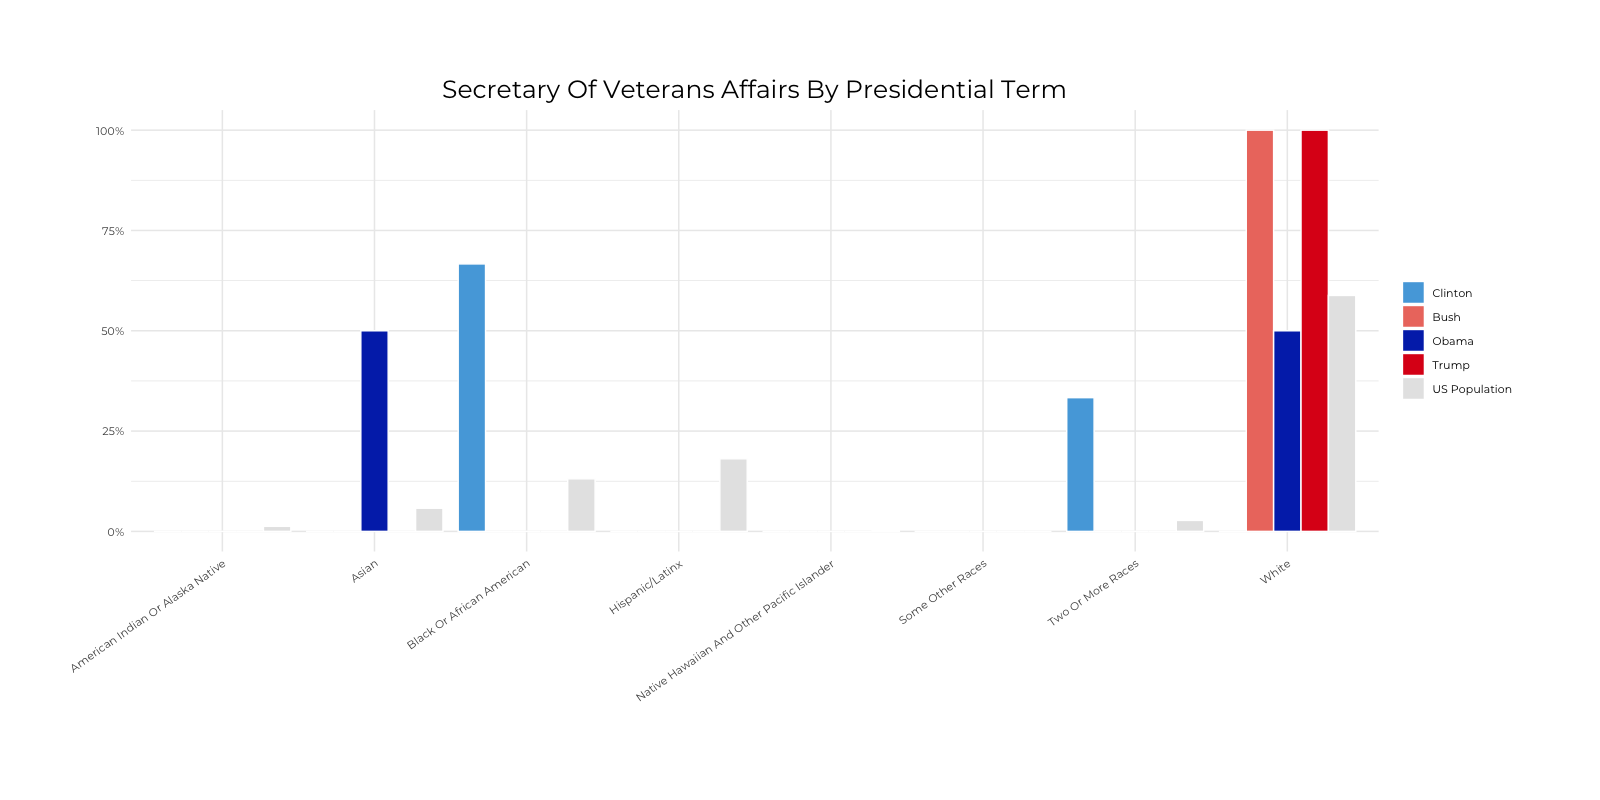 Graph about Racial Composition Comparison of Secretary of Veterans Affairs by Presidential Terms. More detailed text description below.